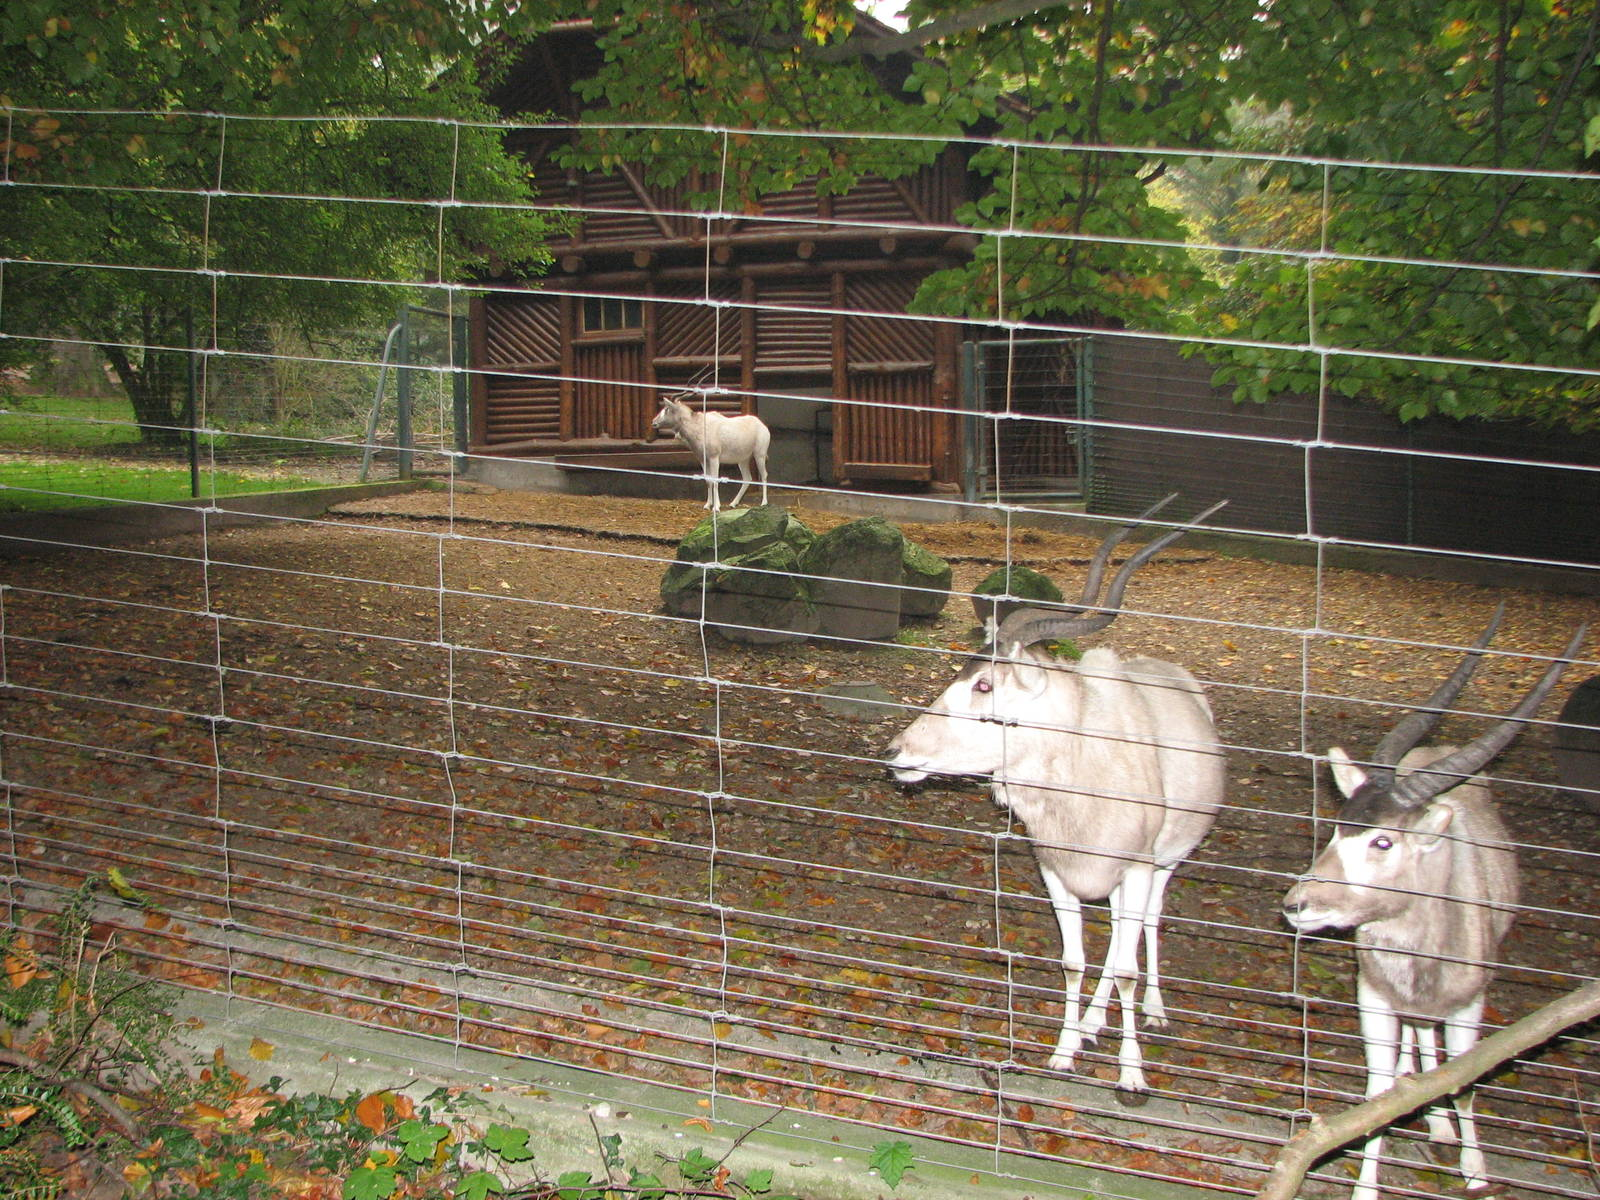 zoo de mulhouse 2006 addax enclosure zoochat. Black Bedroom Furniture Sets. Home Design Ideas